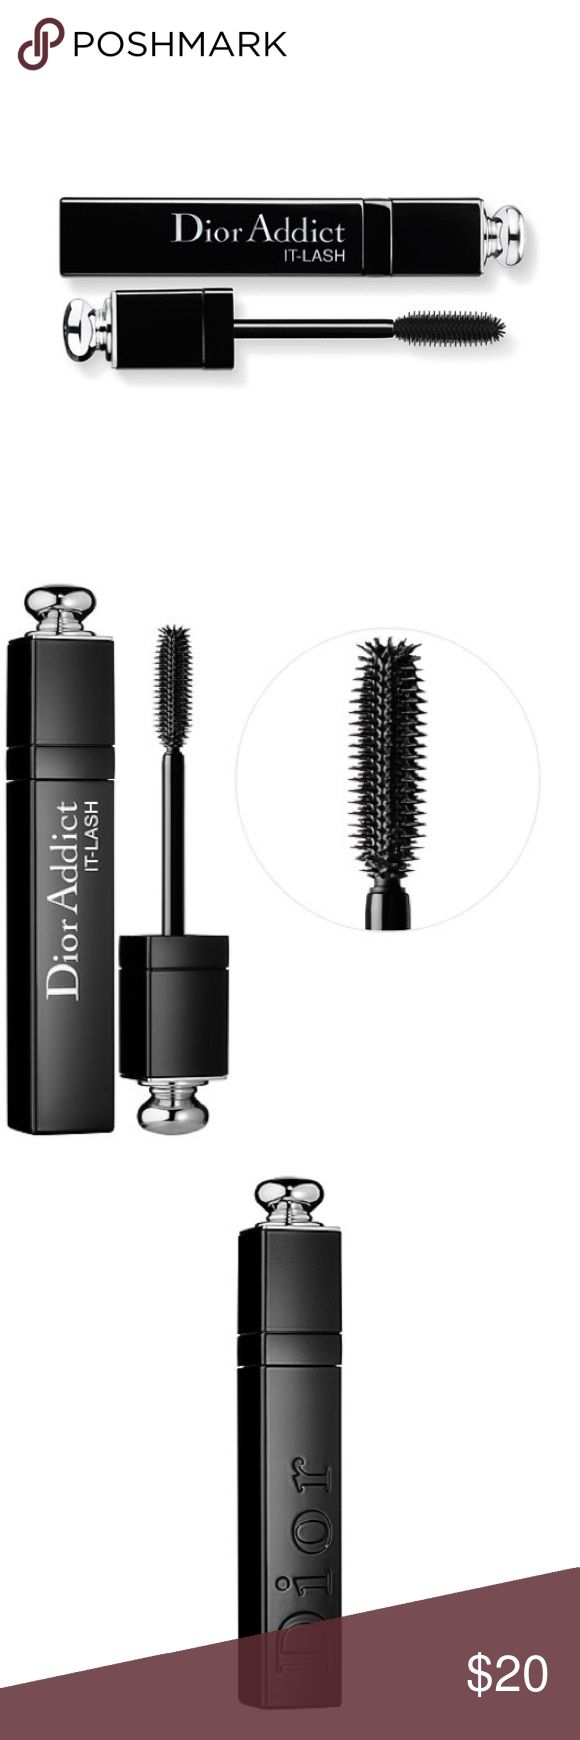 New Dior Addict IT-LASH Mascara in Black Dior Addict IT-LASH Mascara in Black. New, unused, no box. 9ml-0.30 FL.0Z. #092 Dior Makeup Mascara